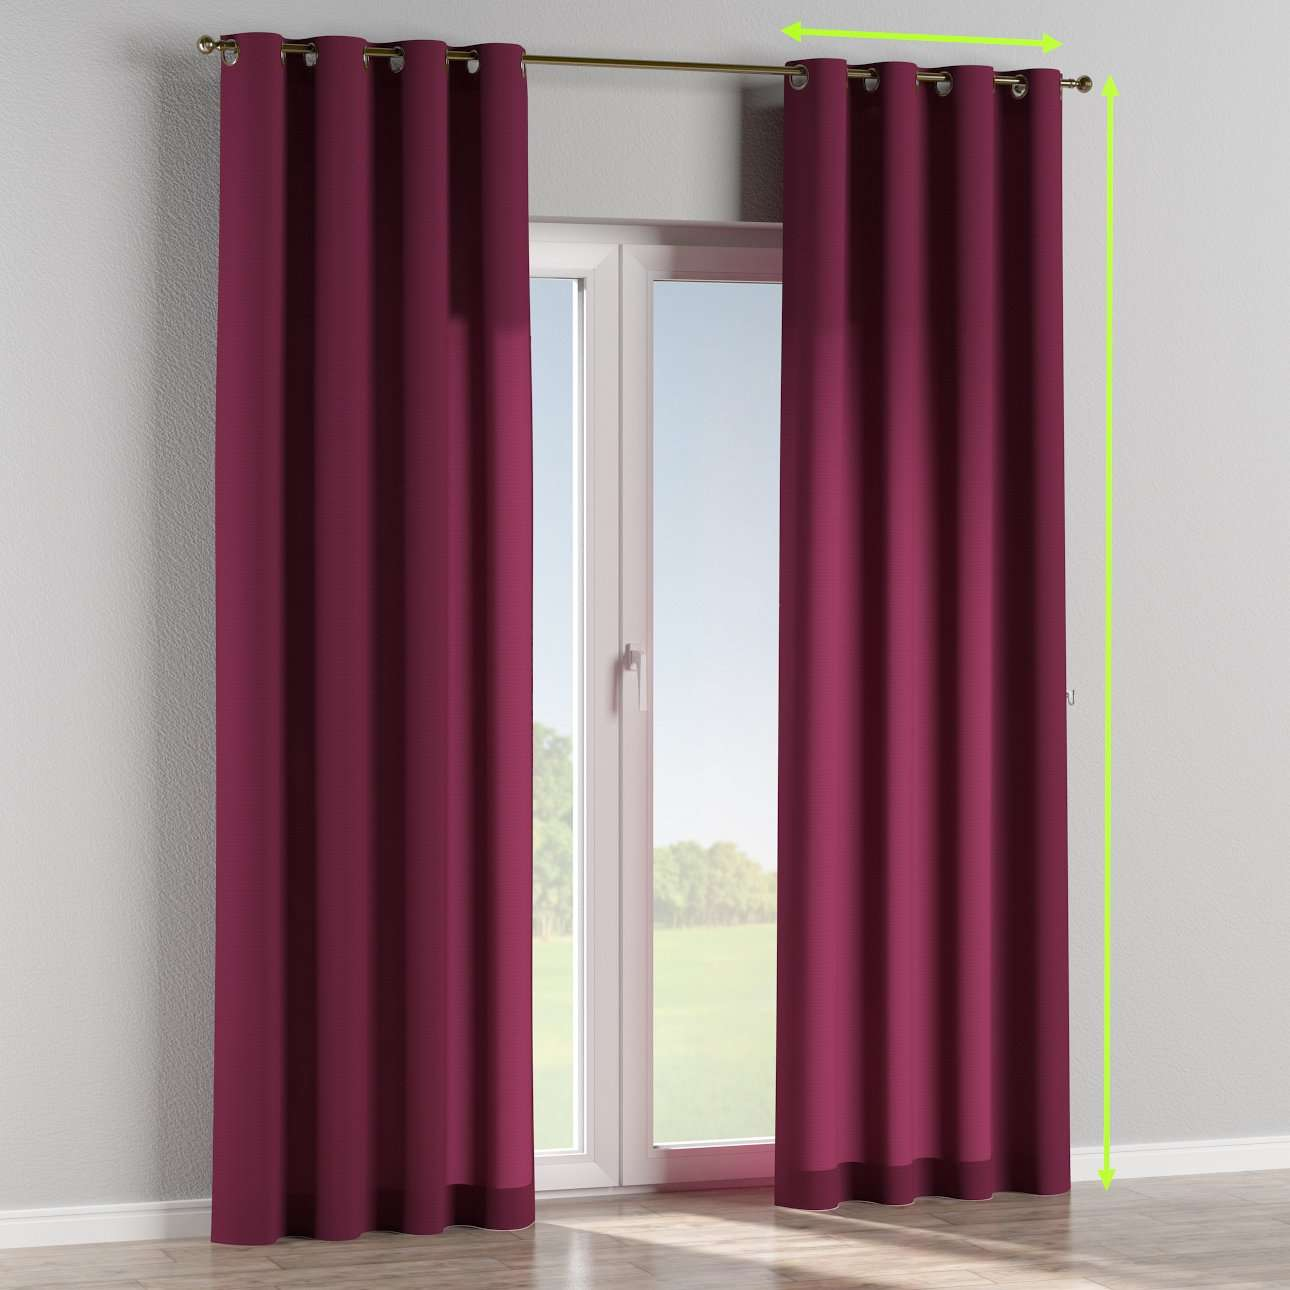 Eyelet lined curtains in collection Jupiter, fabric: 127-20